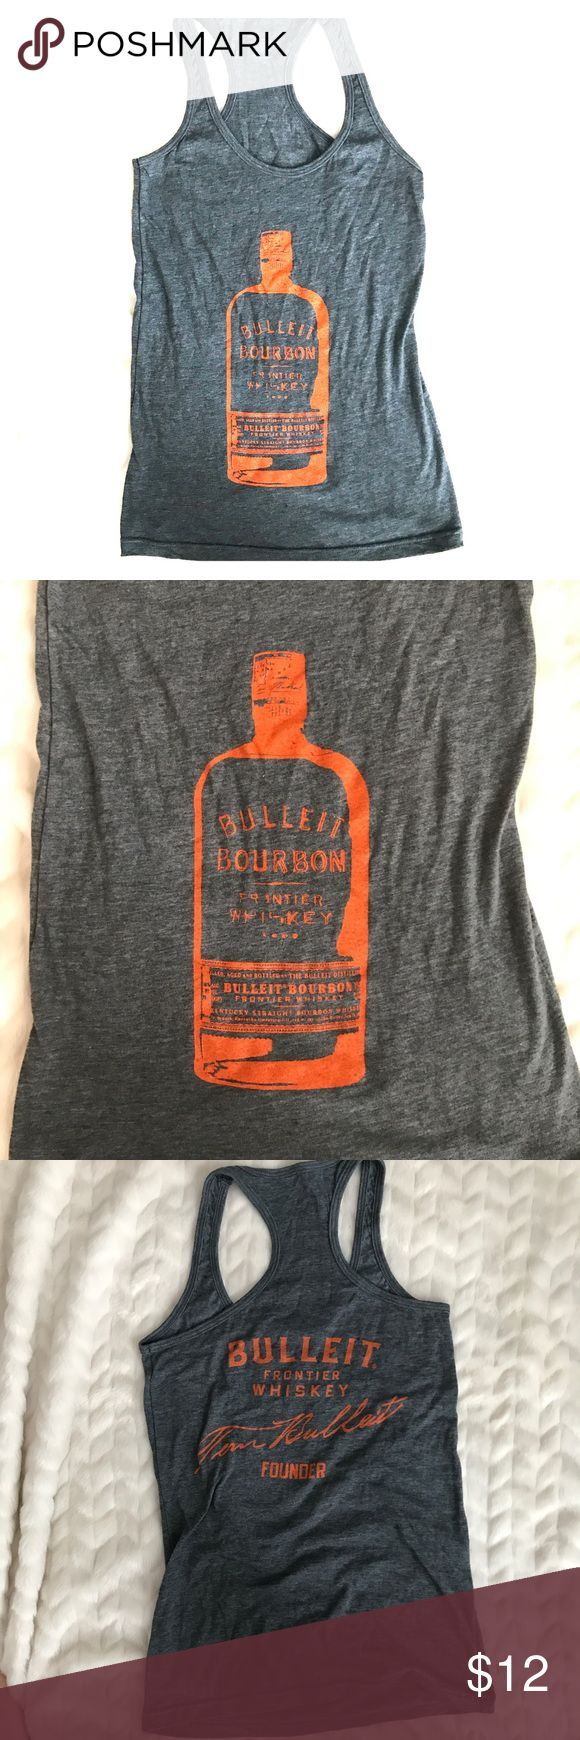 Bulleit Bourbon racerback tank! Hit the gym or the beach in this tank representing popular Bourbon brand, Bulleit Bourbon. Ladies fit to accentuate all your curves, AND muscle! Perfect tank while being a badass at the gym, or during crossfit. Sadly this is too small for me, so let's give it a great home! This tank showcases an embellished front AND back outlines in firehot- orange! Resembles a tank from Buckle! Perfect for all of my country girls out there as well!!! Buckle Tops Tank Tops